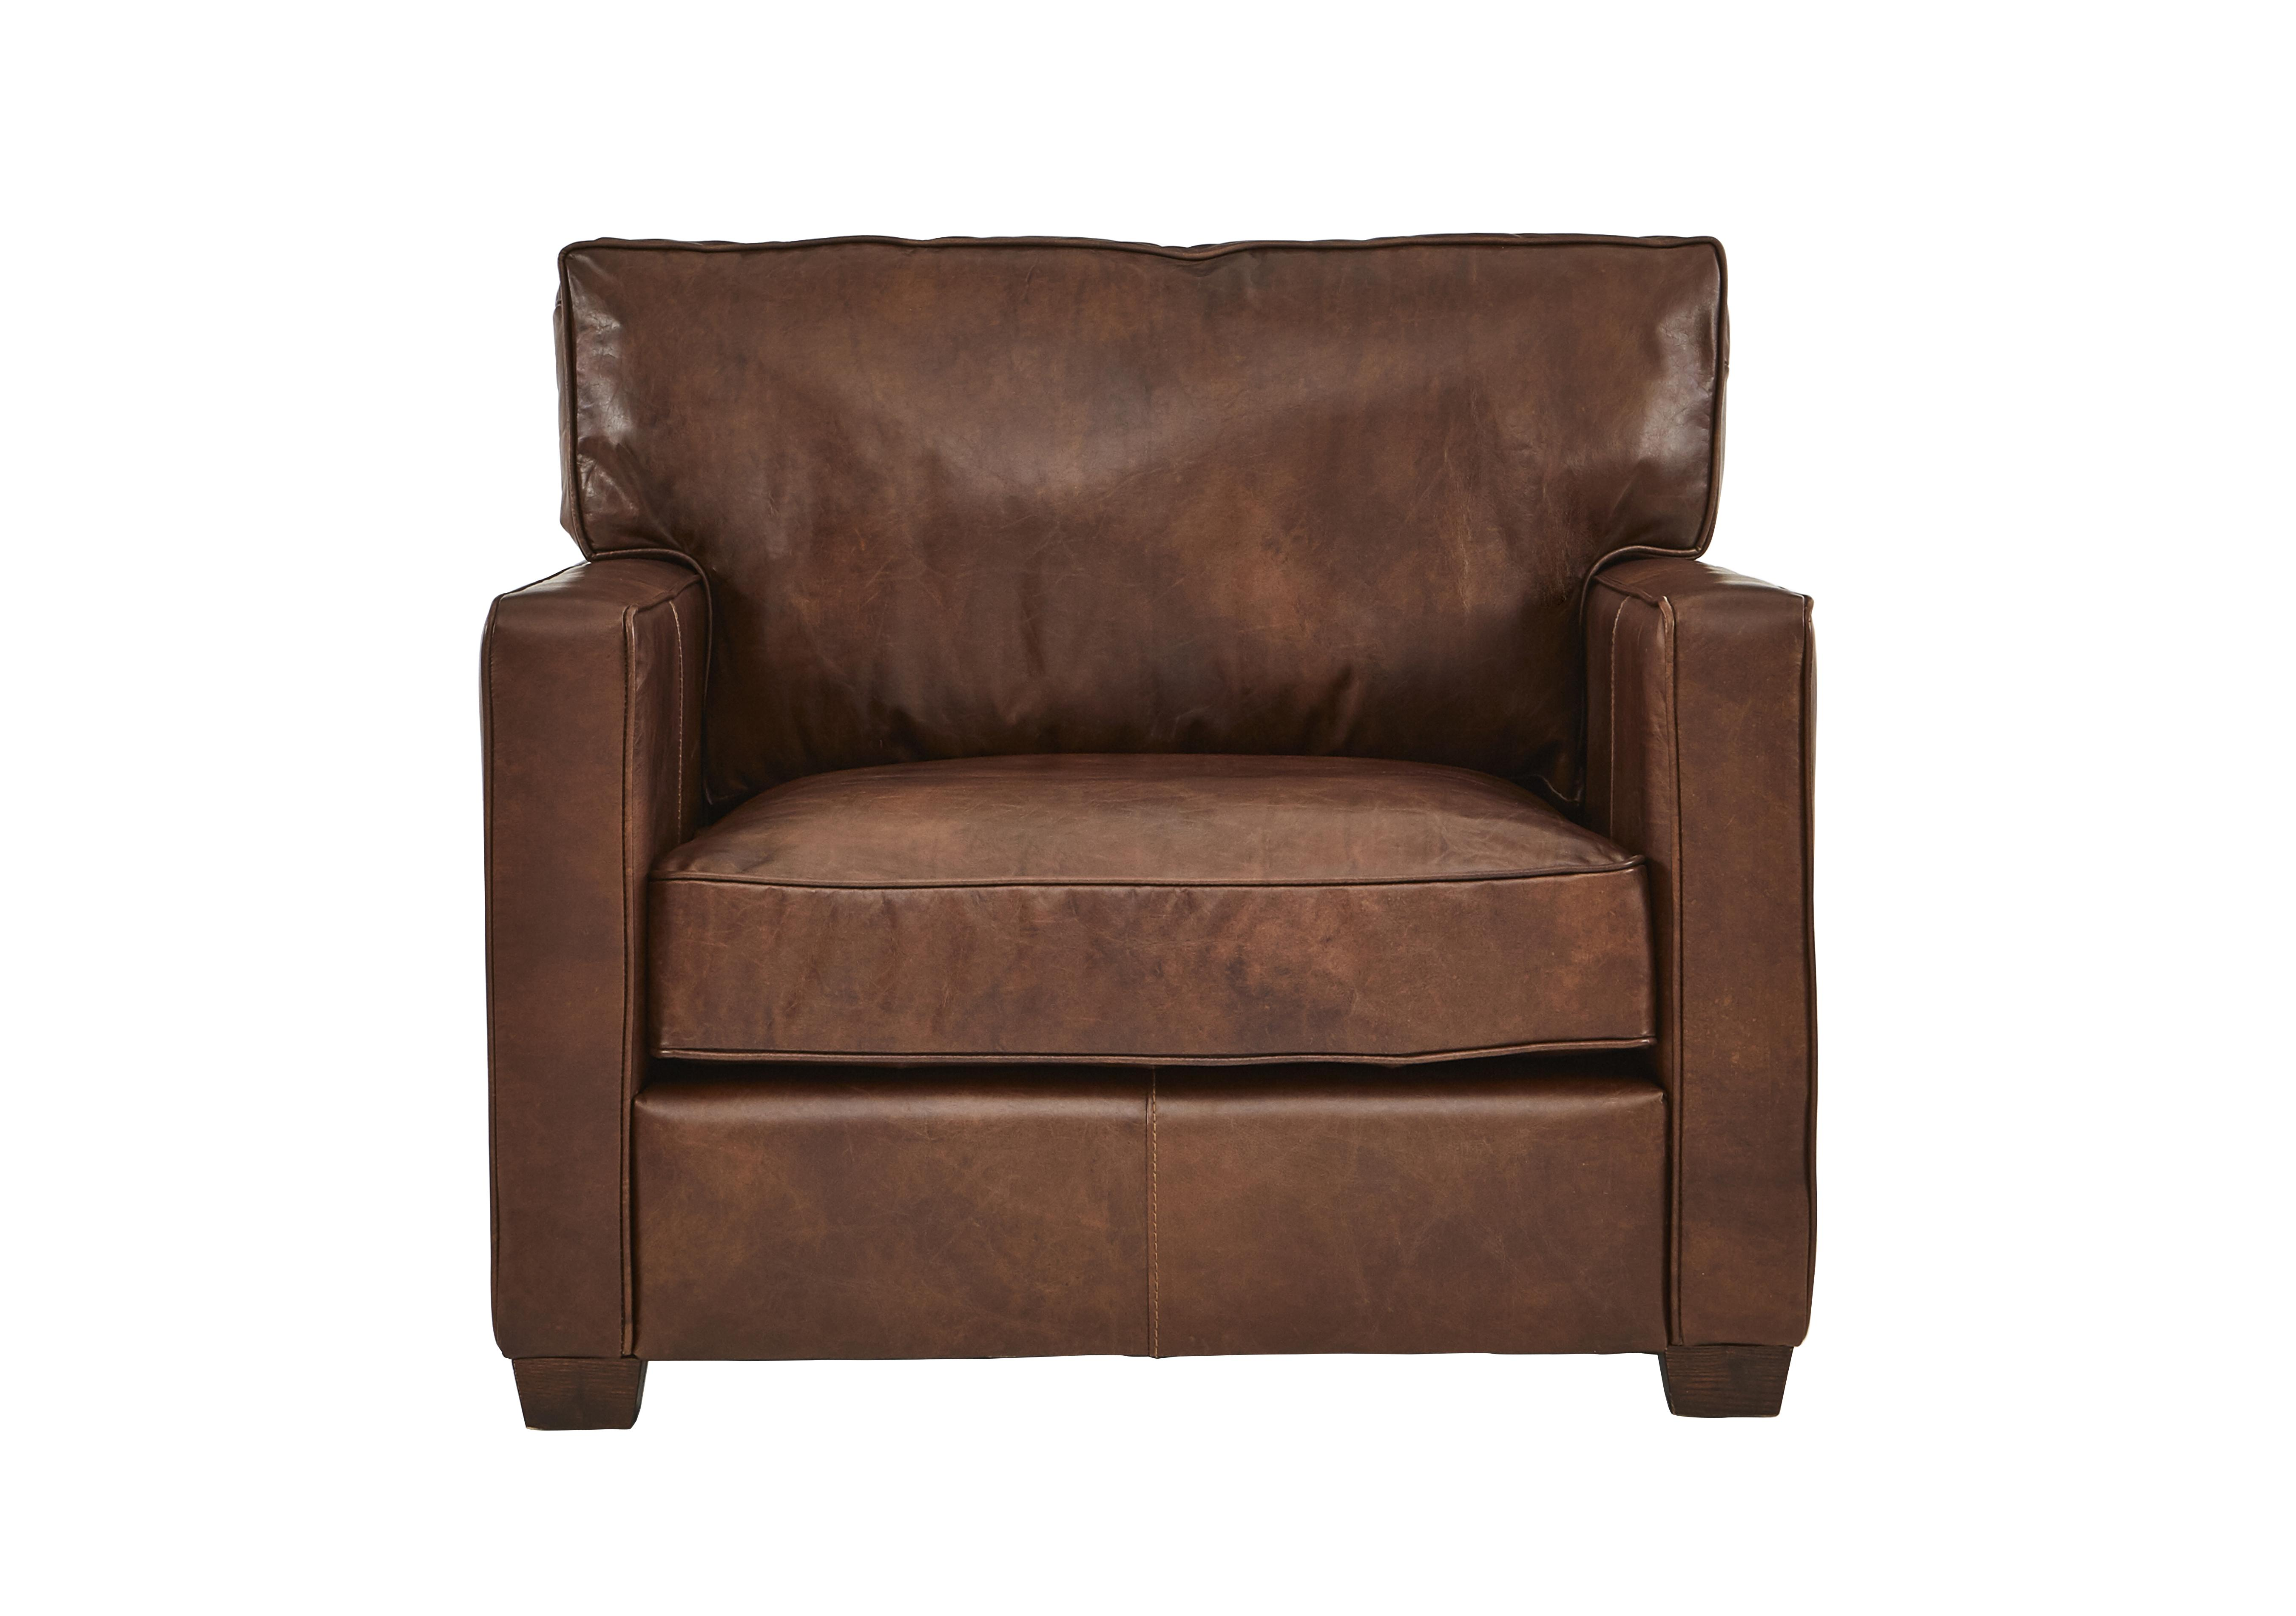 halo fulham broadway leather armchair